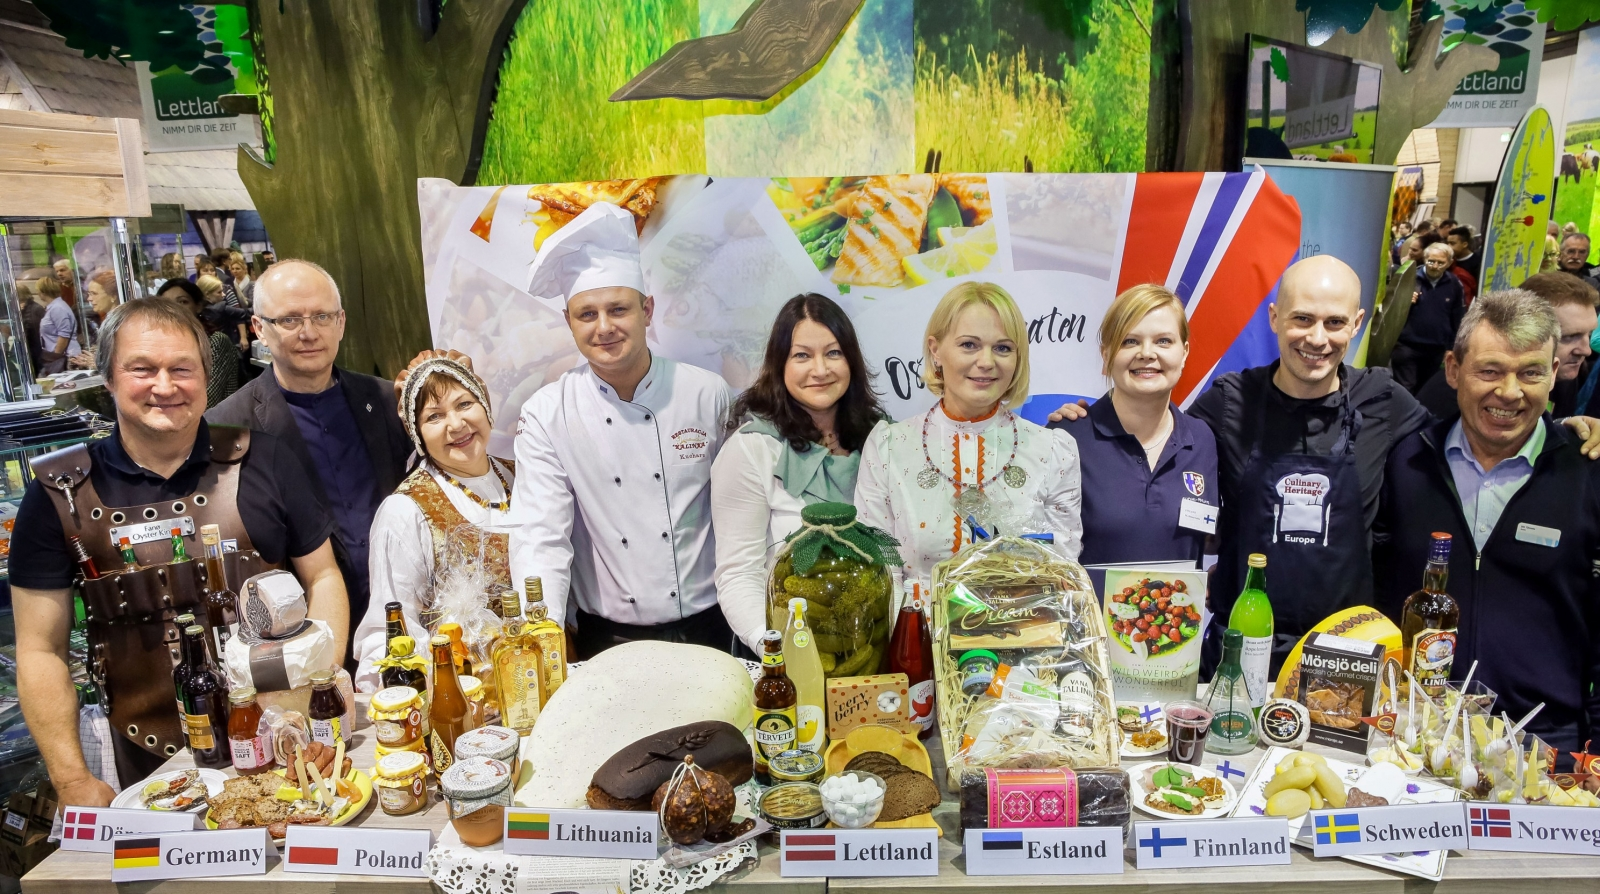 Baltic Sea Culinary Routes first presentation in Grüne Woche 2015, Berlin, Germany